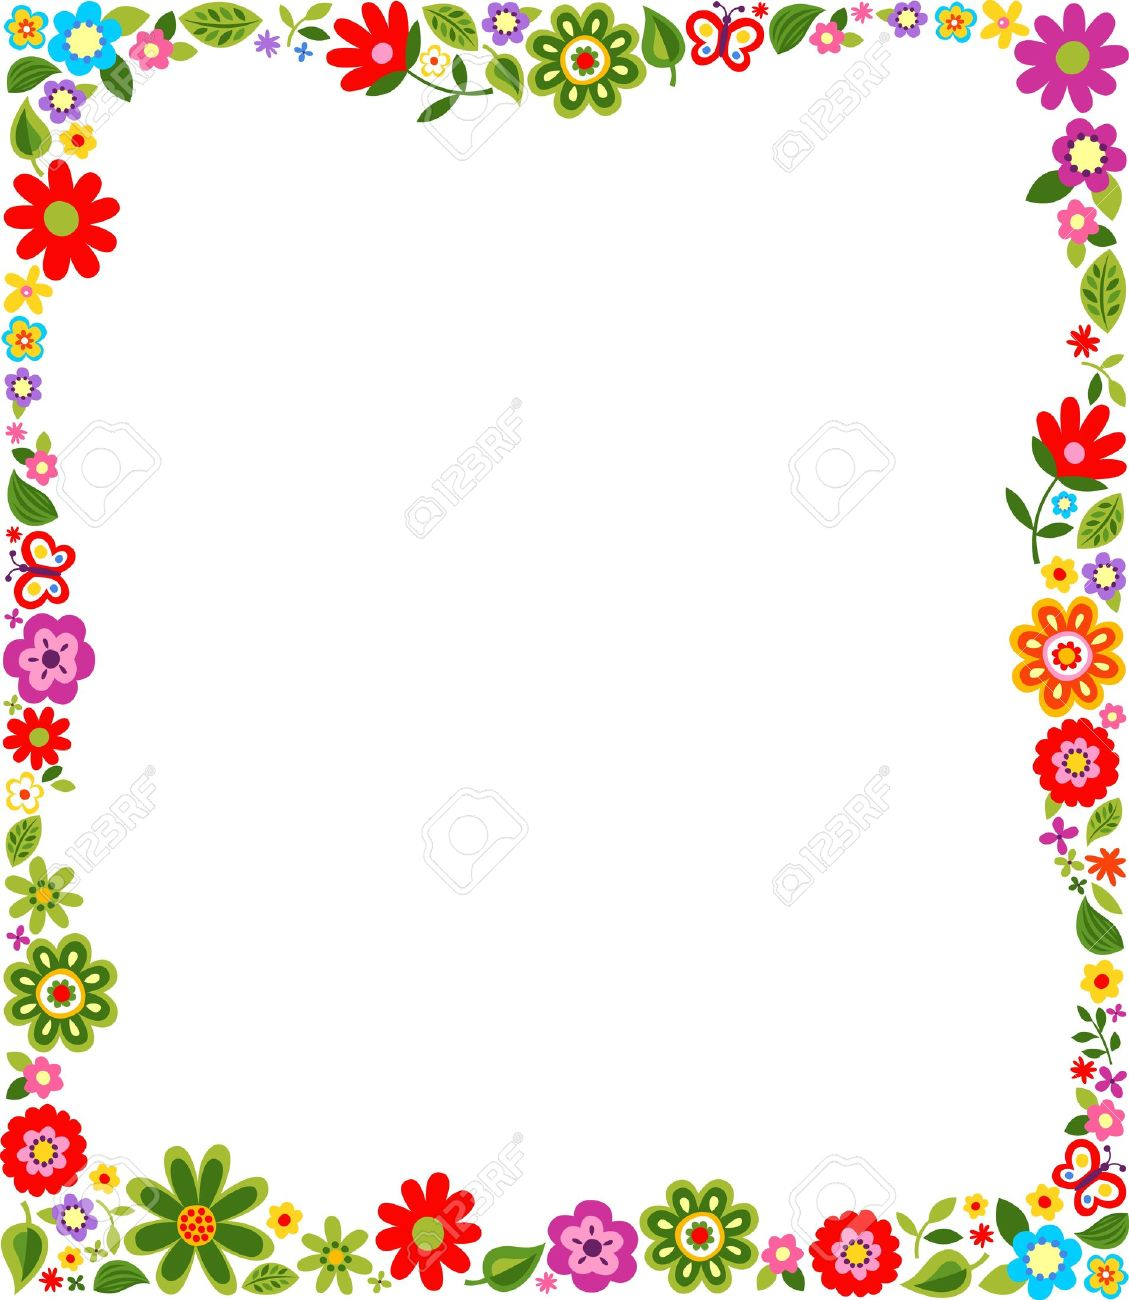 Floral Pattern Border Design